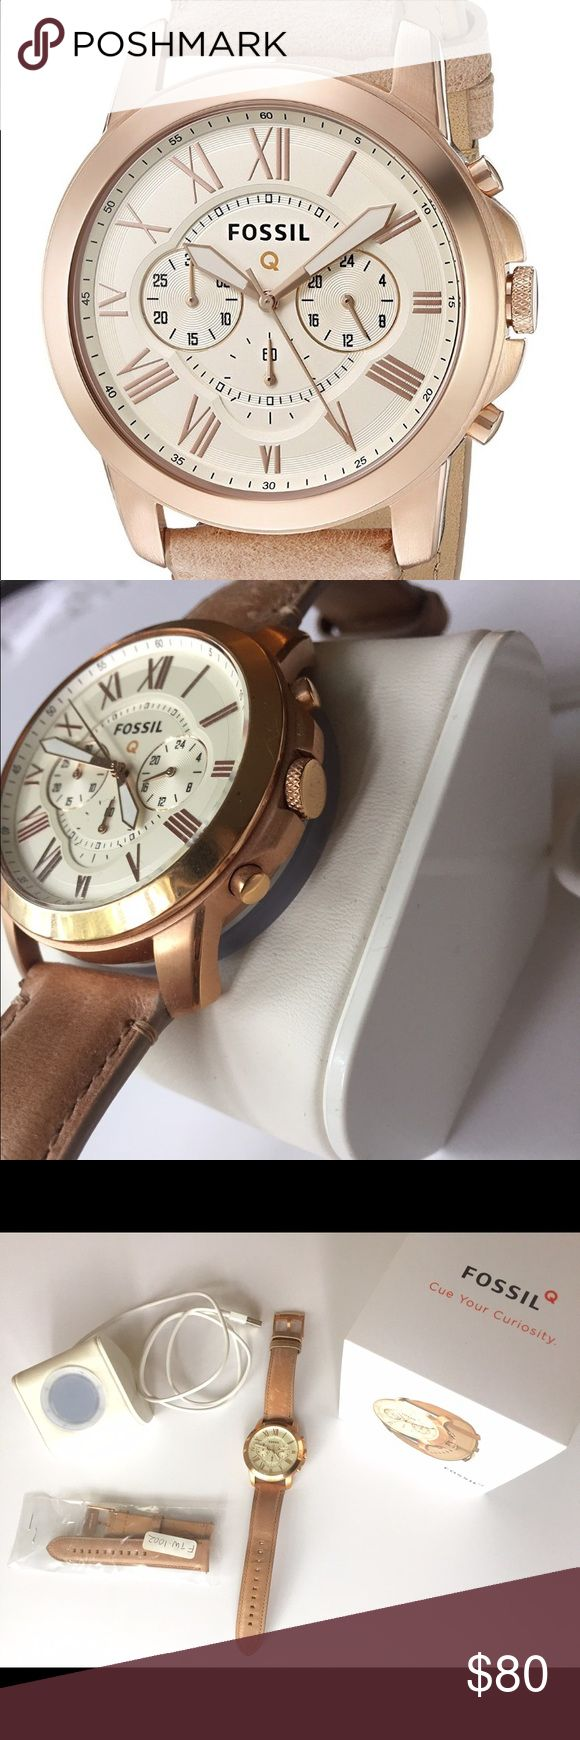 """Fossil Q Grant Smartwatch - 1st Gen Sand Leather Like new! Only worn for about six months before I upgraded to the Apple Watch. Loved the look of a watch with the functionality of a smartwatch.   """"Fashionable take on wearable tech— 44 mm case in rose gold-tone & tan leather calfskin band. Receive filtered LED color-coded notifications from contacts. Track everything from steps to calories. Compatible w. Fossil brand 22mm straps. Compatible with Android & iOS operating systems. Bluetooth…"""